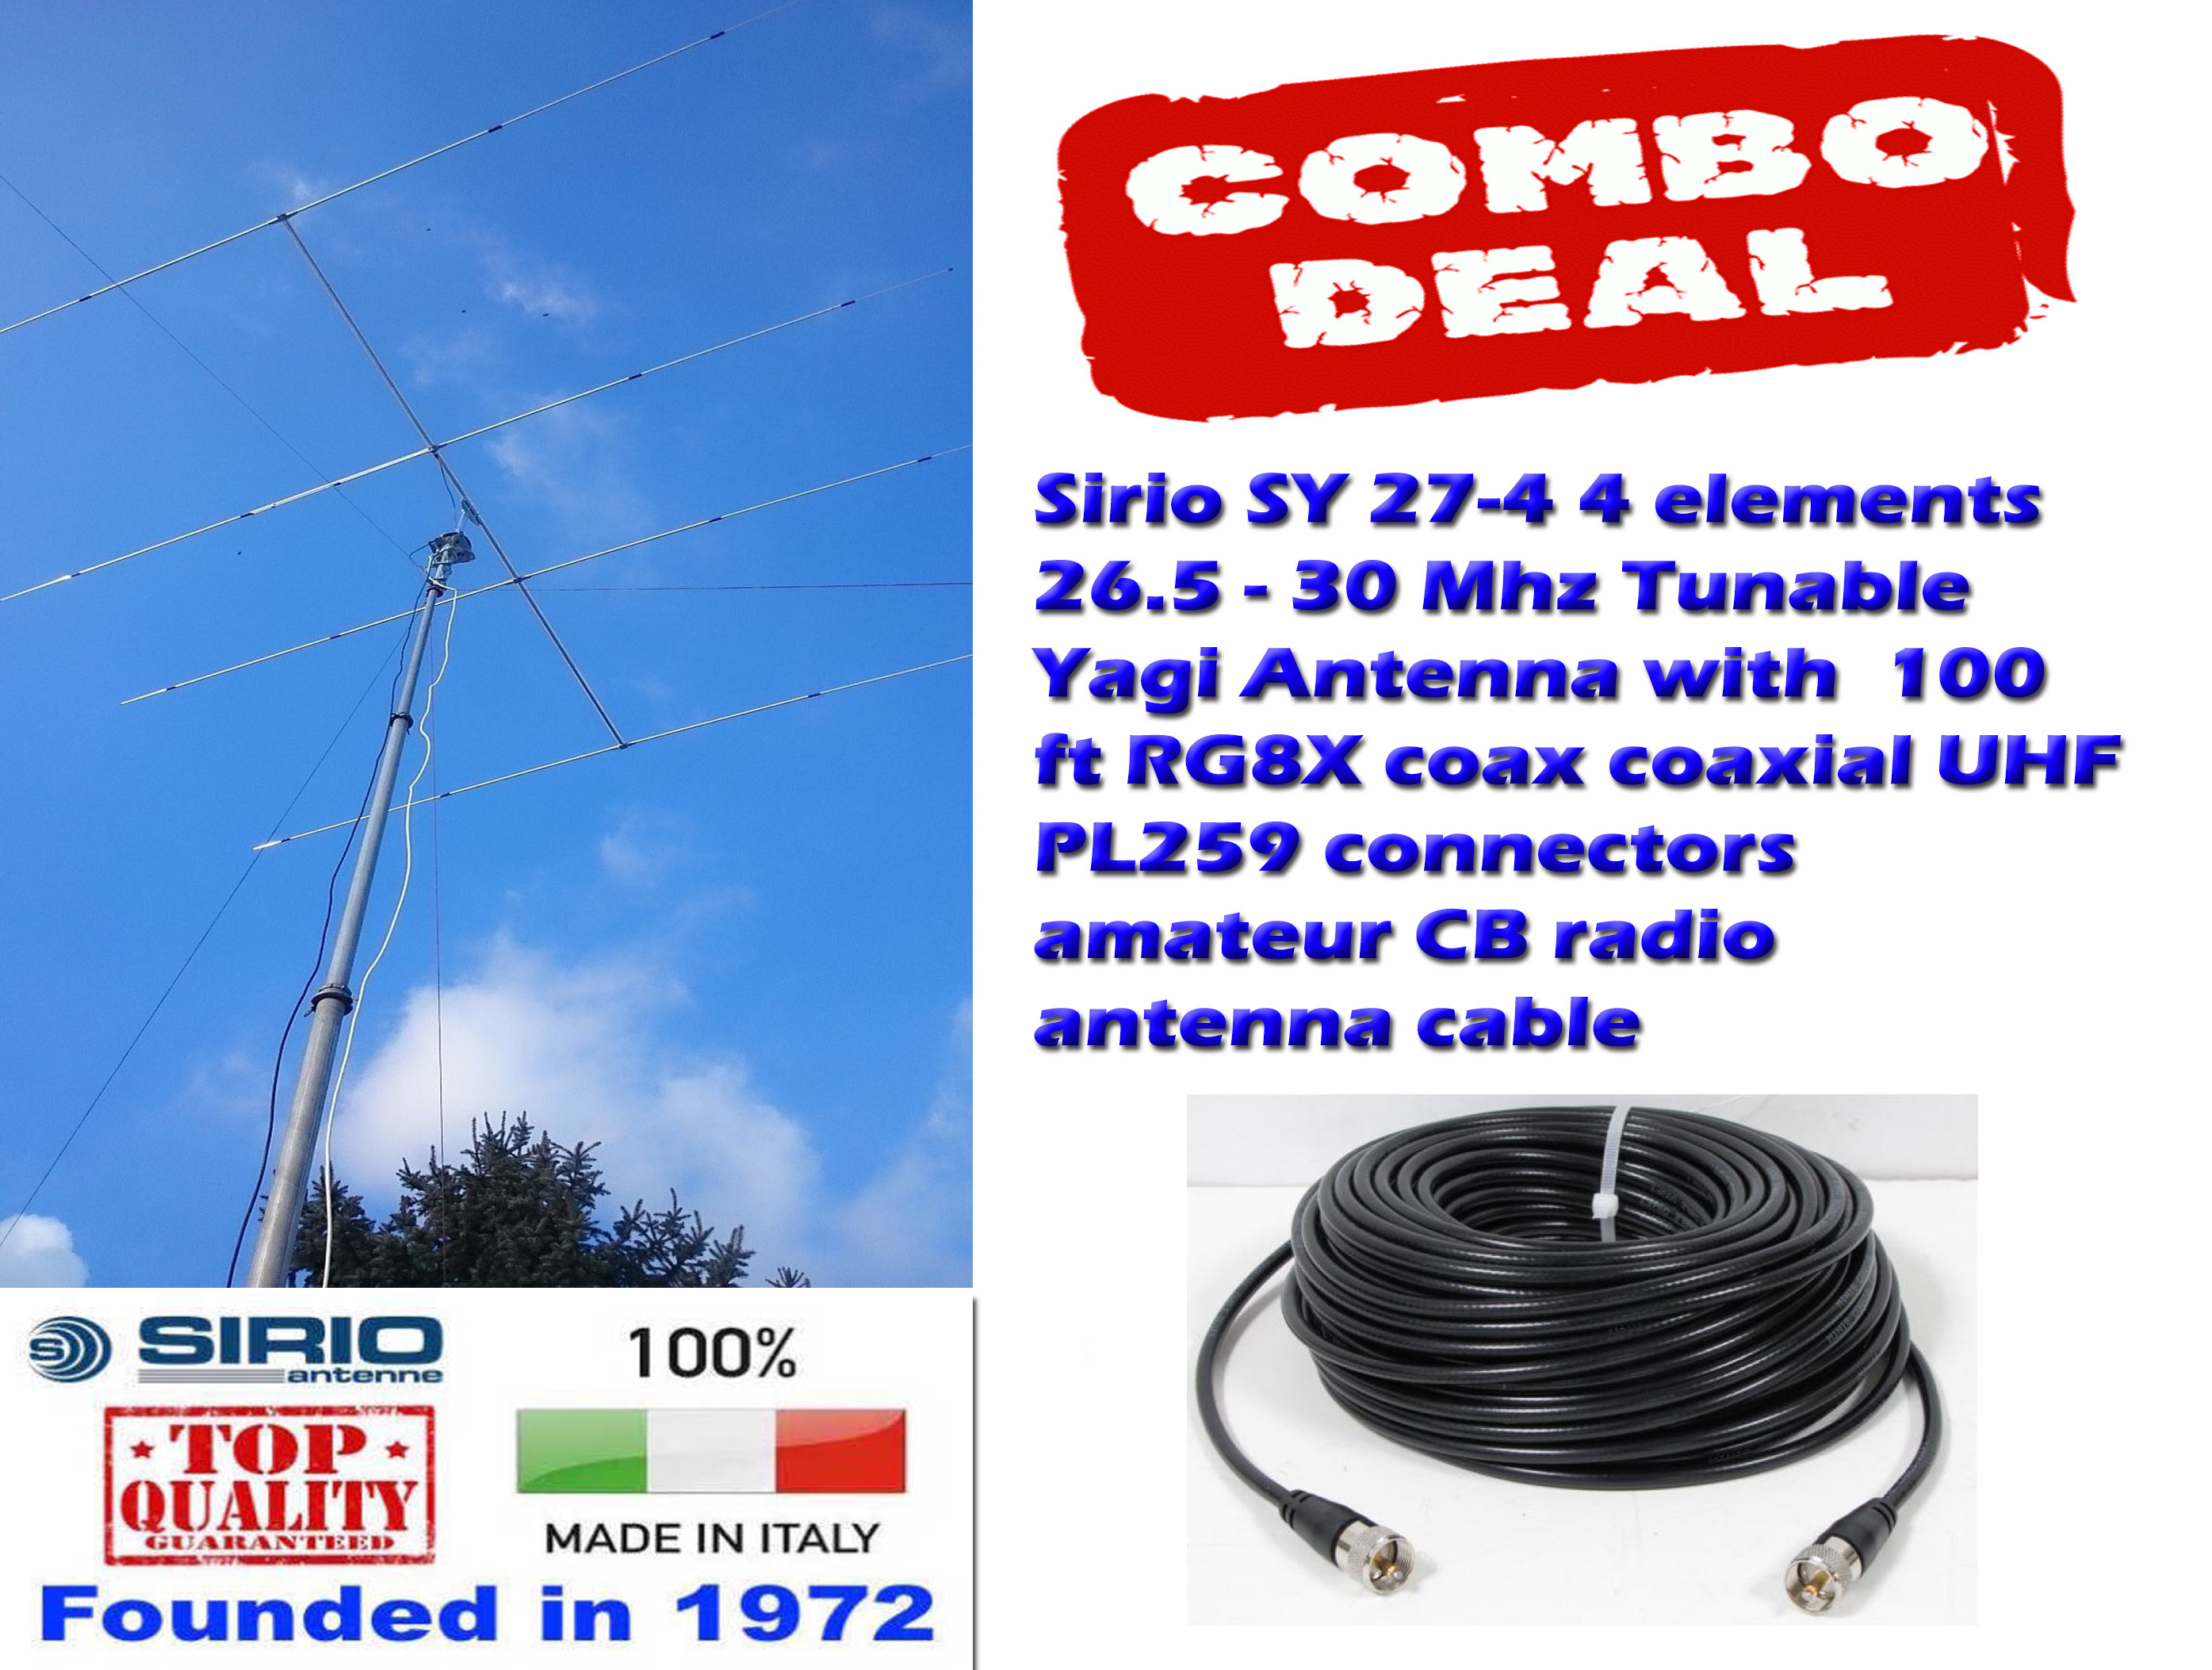 Cb 10m Sirio Antenna High Performance Made In Italy Radio Wiring Diagram Sy 27 4 Elements Tunable Yagi With 100 Ft Coax